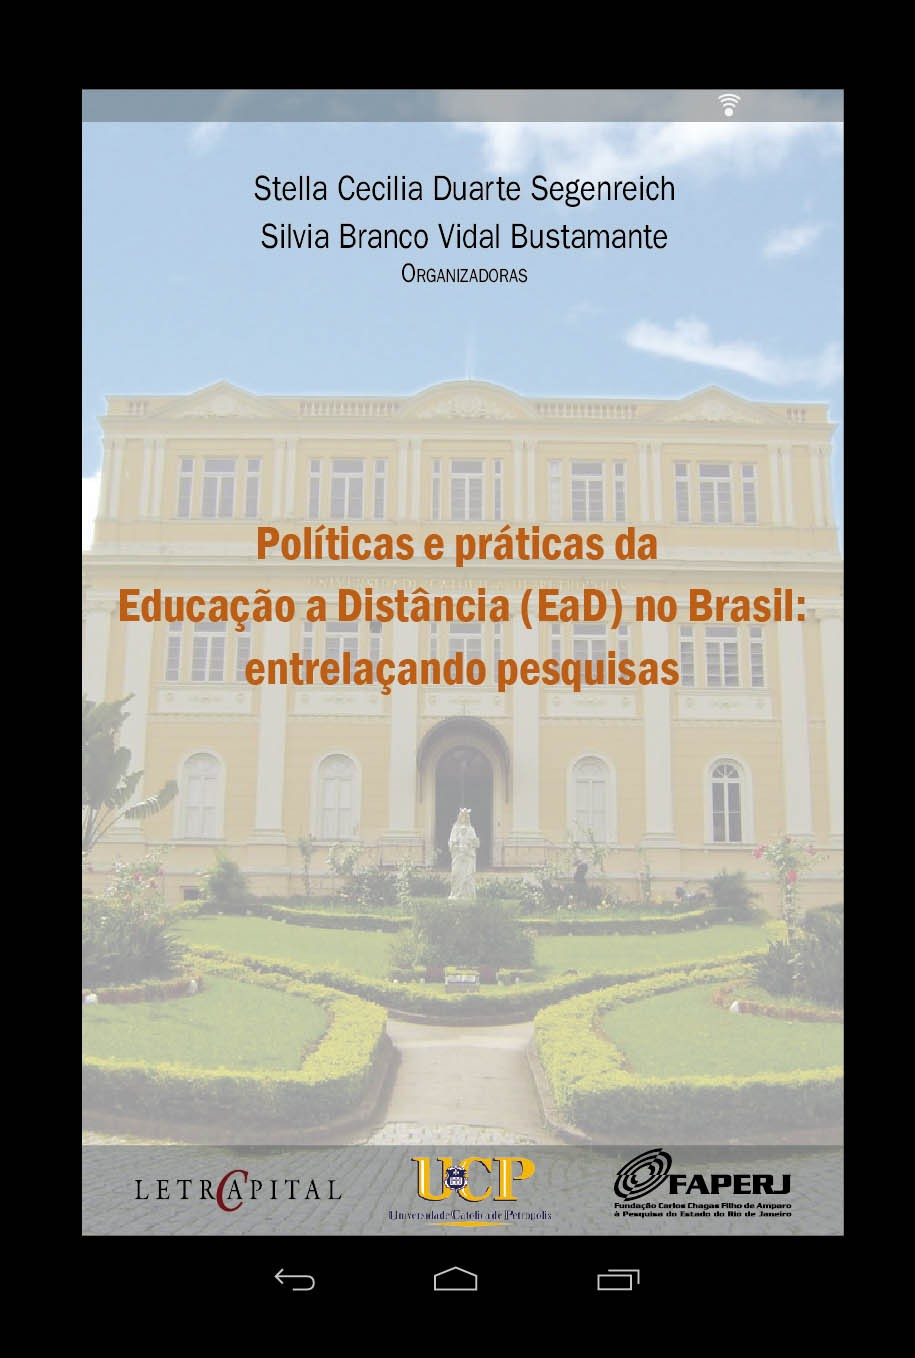 Políticas e práticas da educação a distância (EaD) no Brasil: Entrelaçando pesquisas